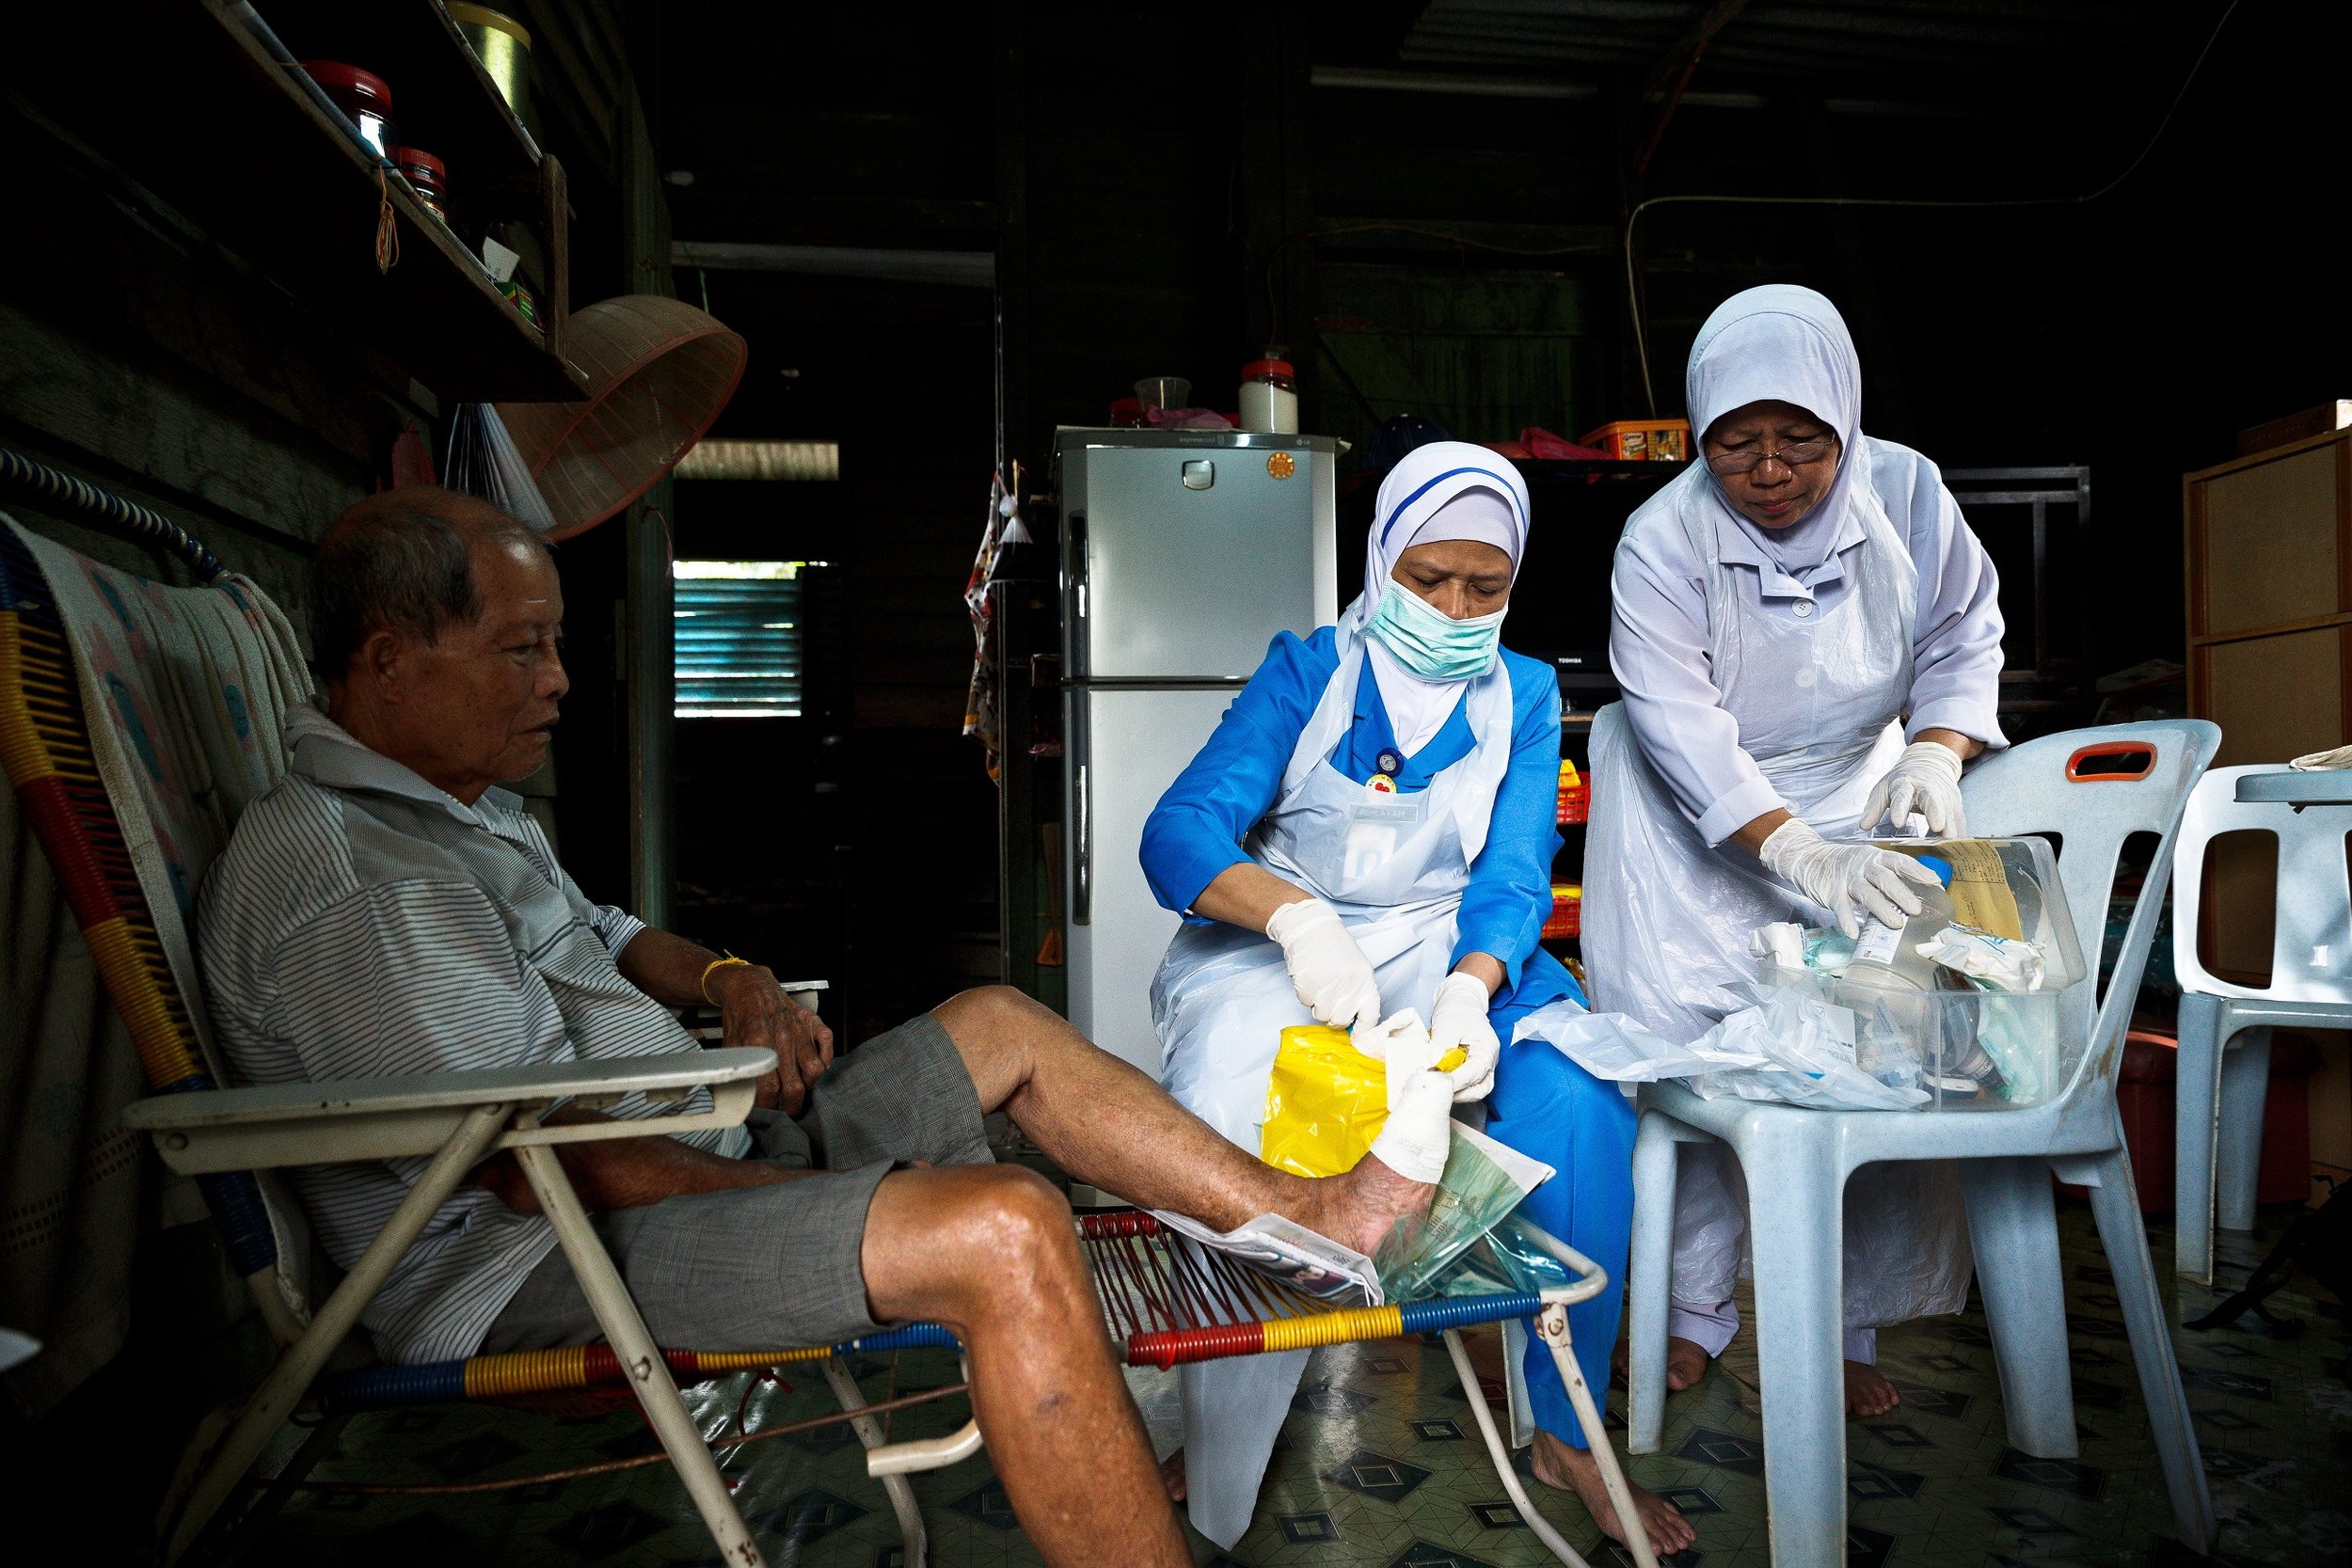 The medical staff will visit the residents at the chalets to help them with their dressing. (photo by Mango Loke )